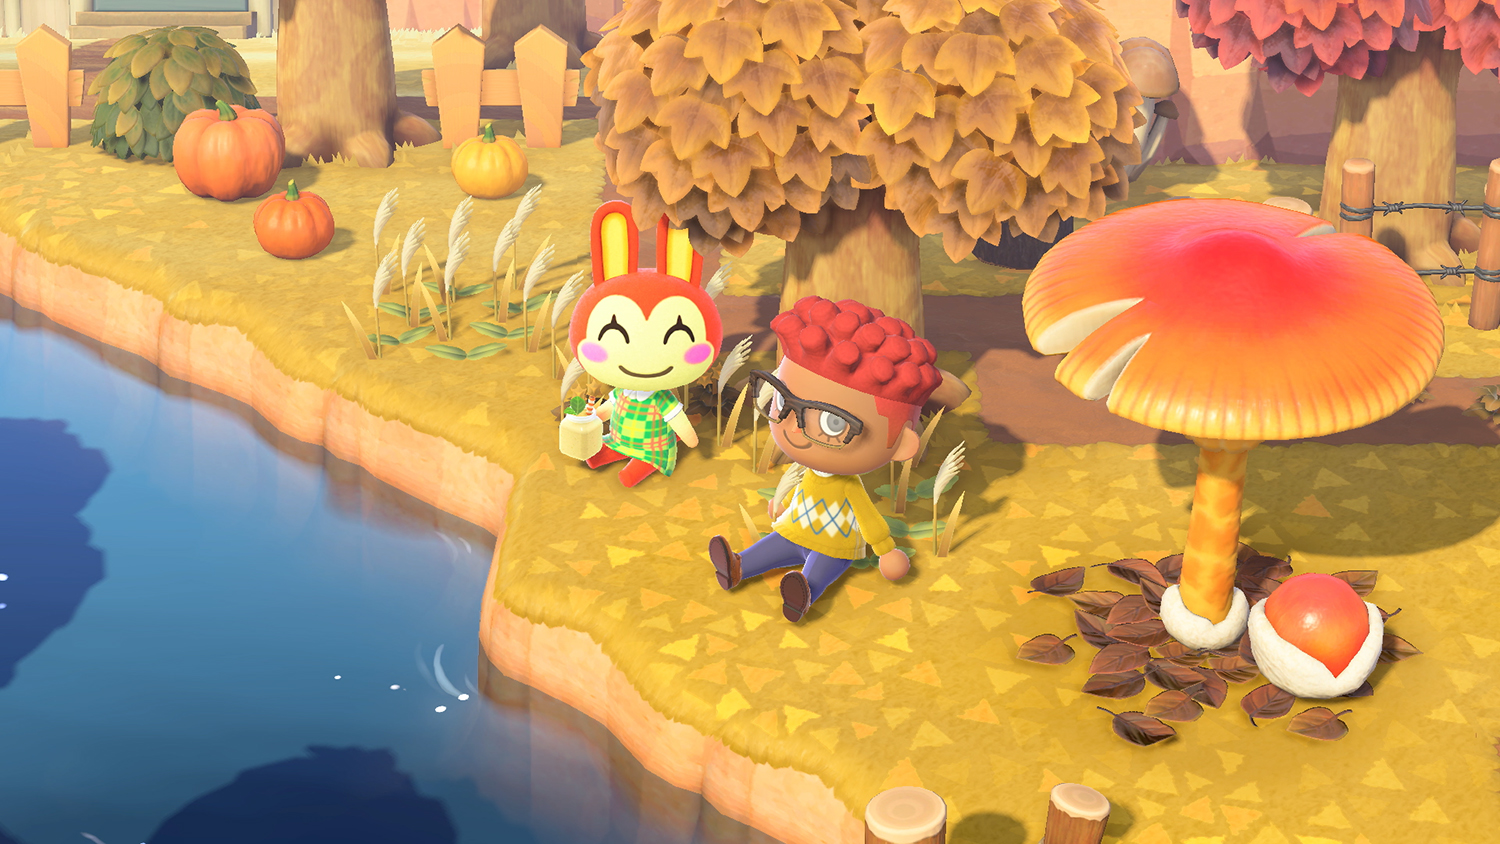 'Animal Crossing: New Horizons': How Can Players Get Acorns and Pine Cones?